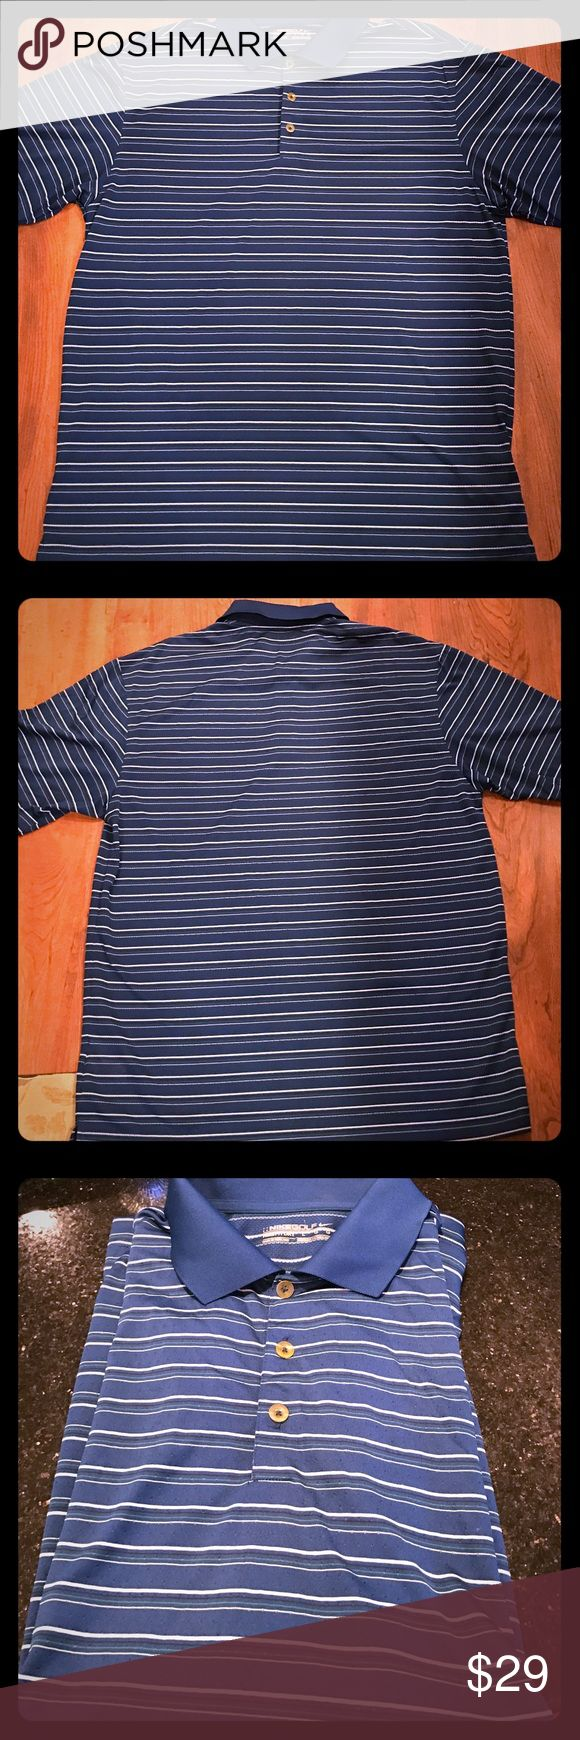 Golf shirt Men's striped short sleeved golf shirt in almost perfect condition. It's Nike dry-fit material ..very comfortable material almost wrinkle free. Nike Golf  Shirts Polos